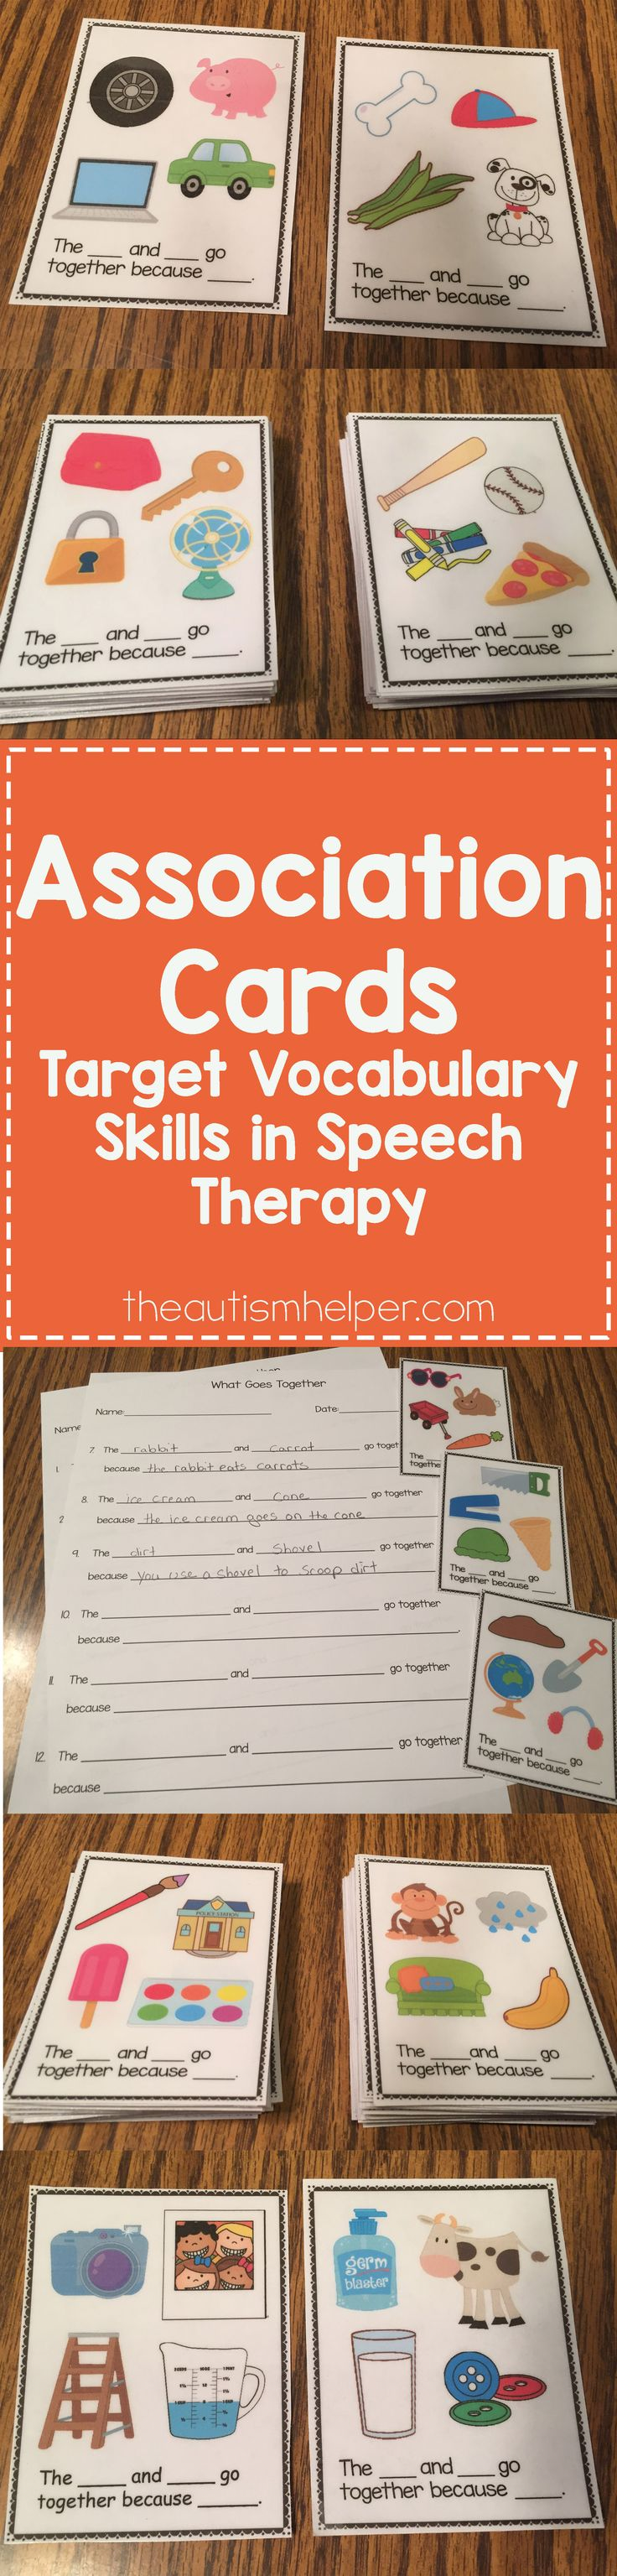 Sarah the Speech Helper created Association Cards to target vocabulary skills! They require students to identify which 2 items from a group of 4 have a relationship & why. Check them out today!! From theautismhelper.com #theautismhelper